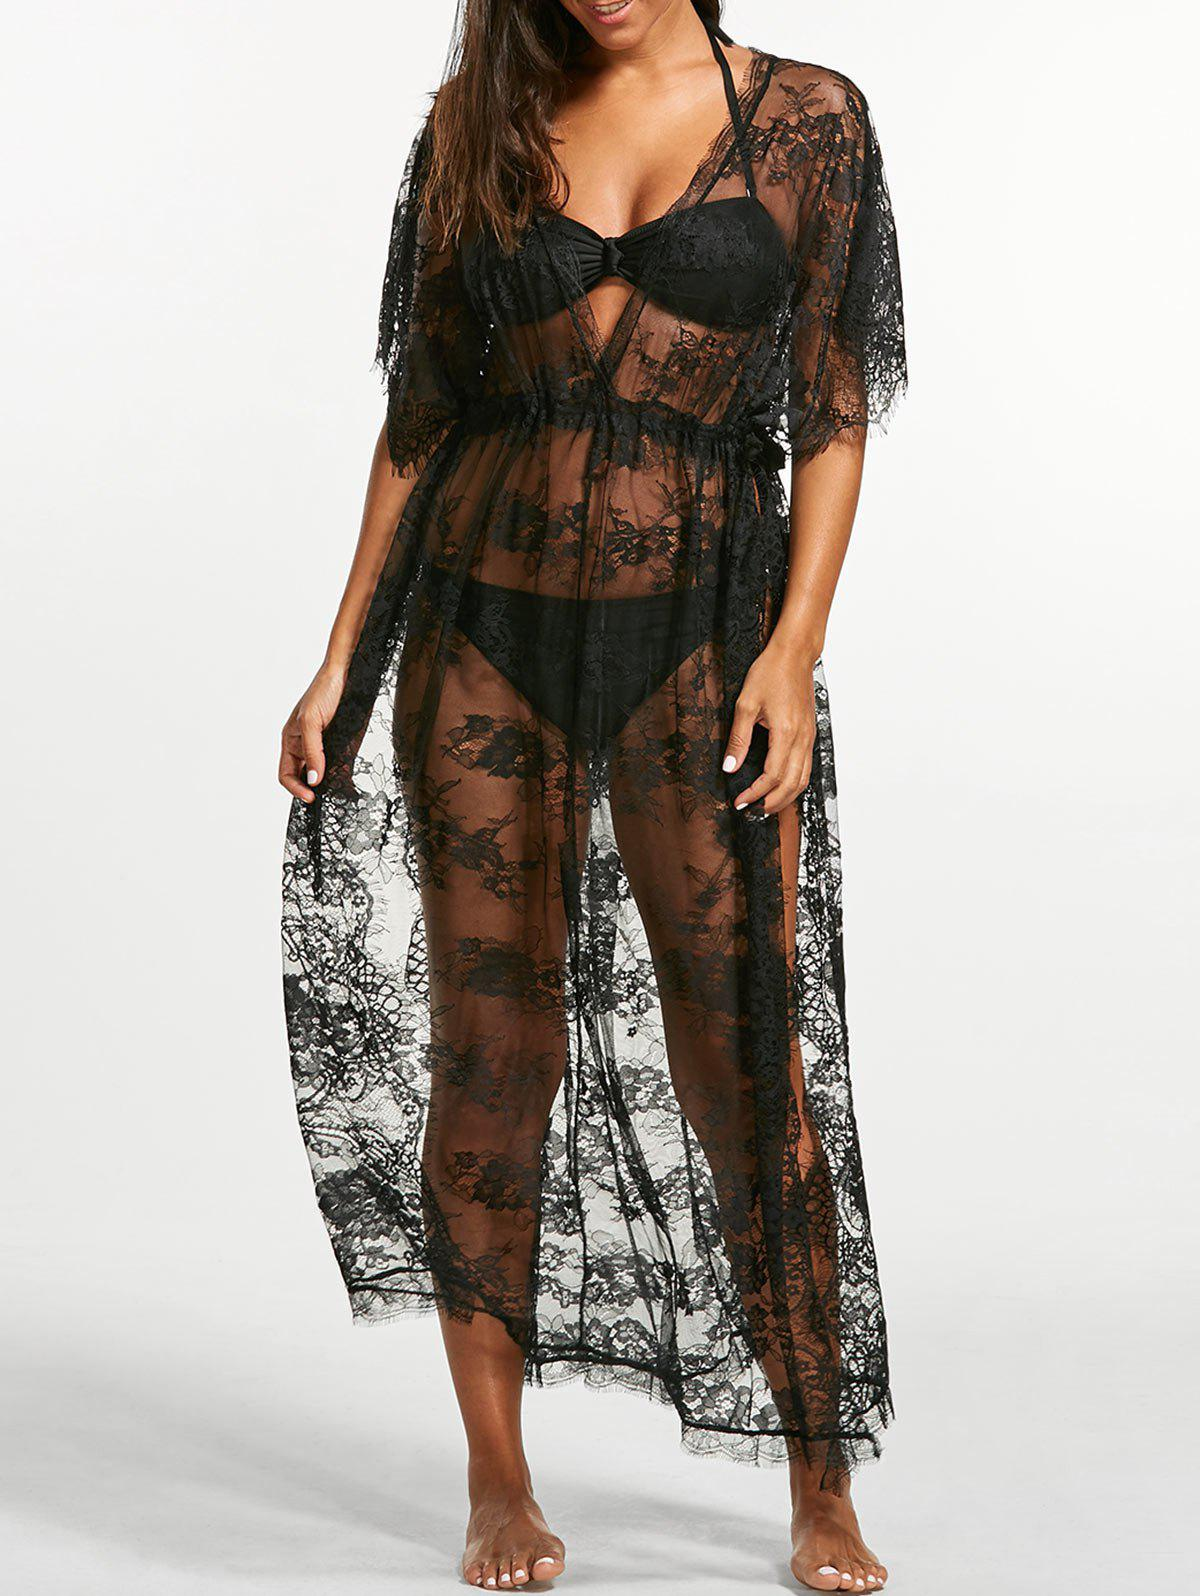 Black One Sheer Lace Maxi Cover Dress Beach